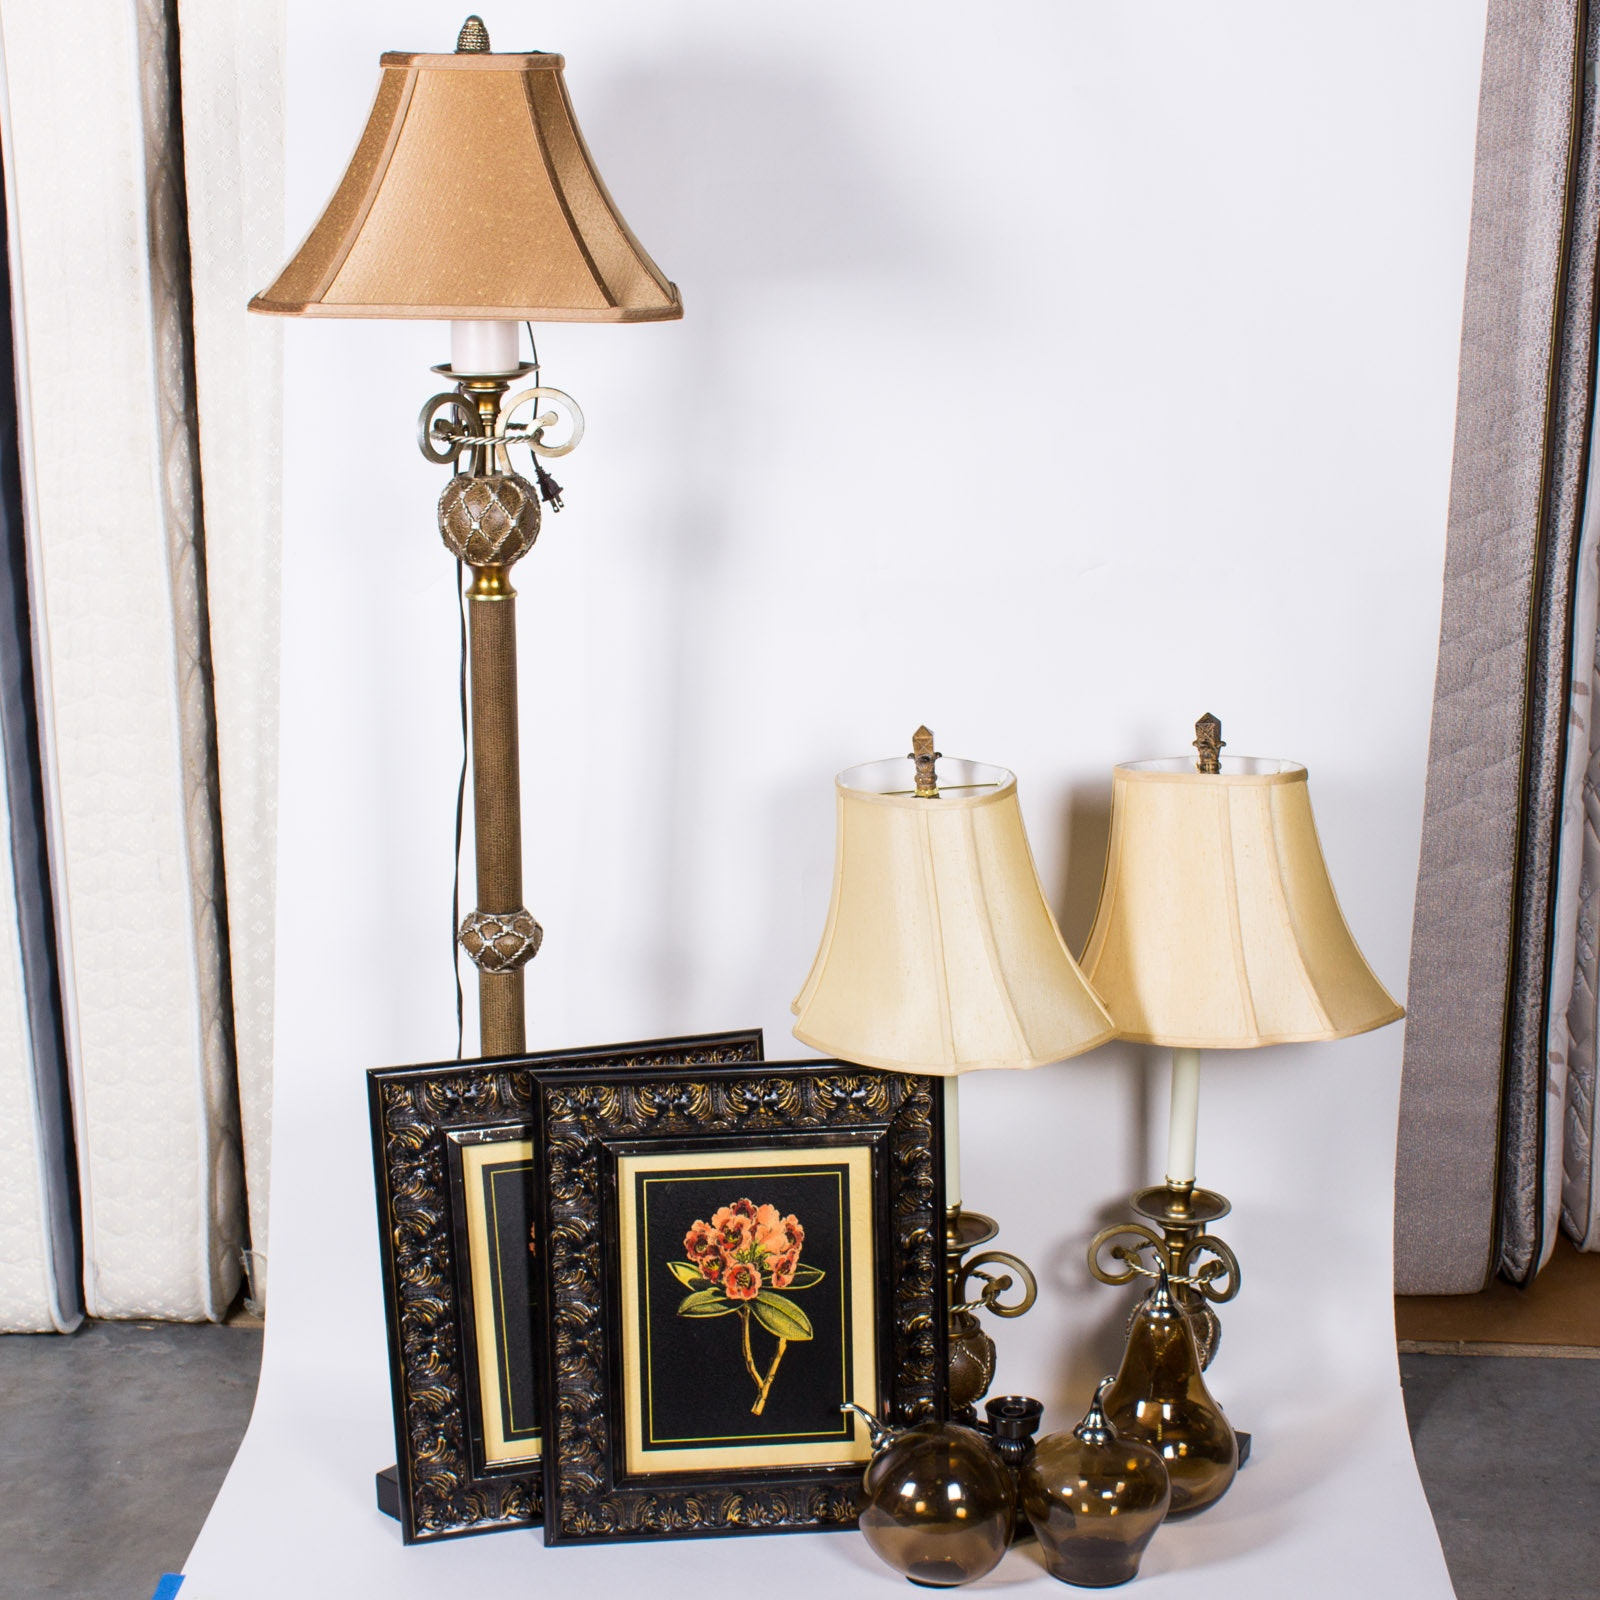 Decorative Lamps, Framed Art and Home Decor